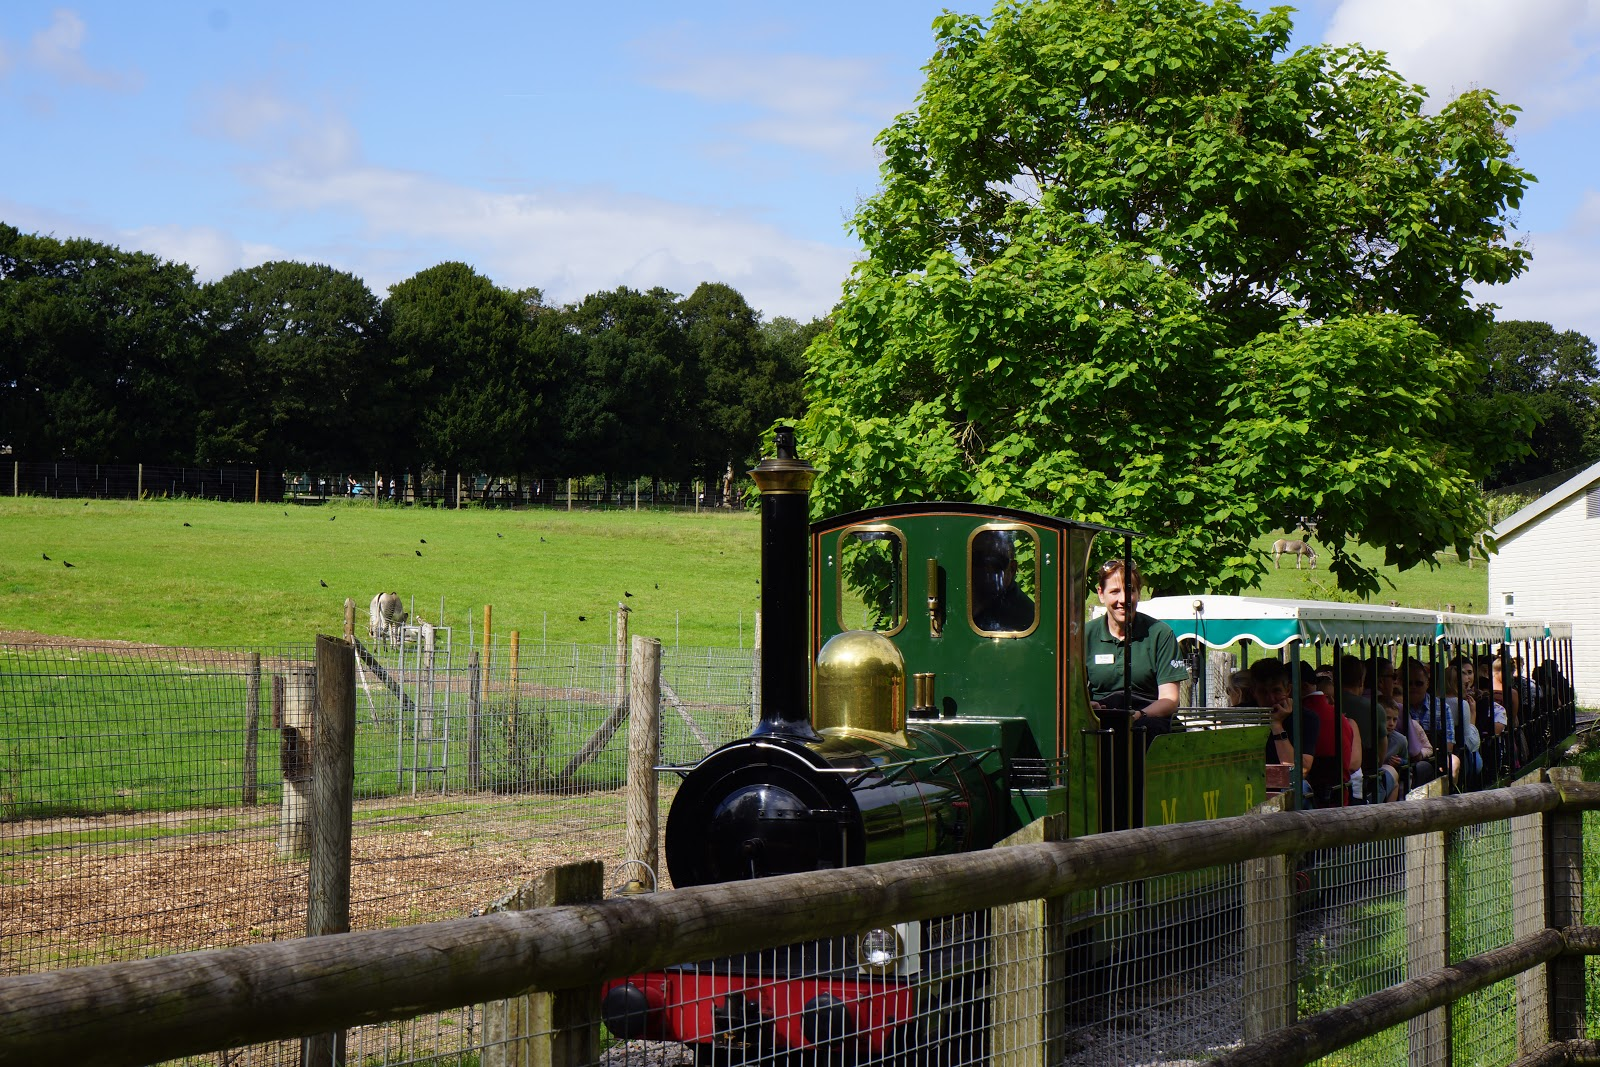 land train at marwell zoo